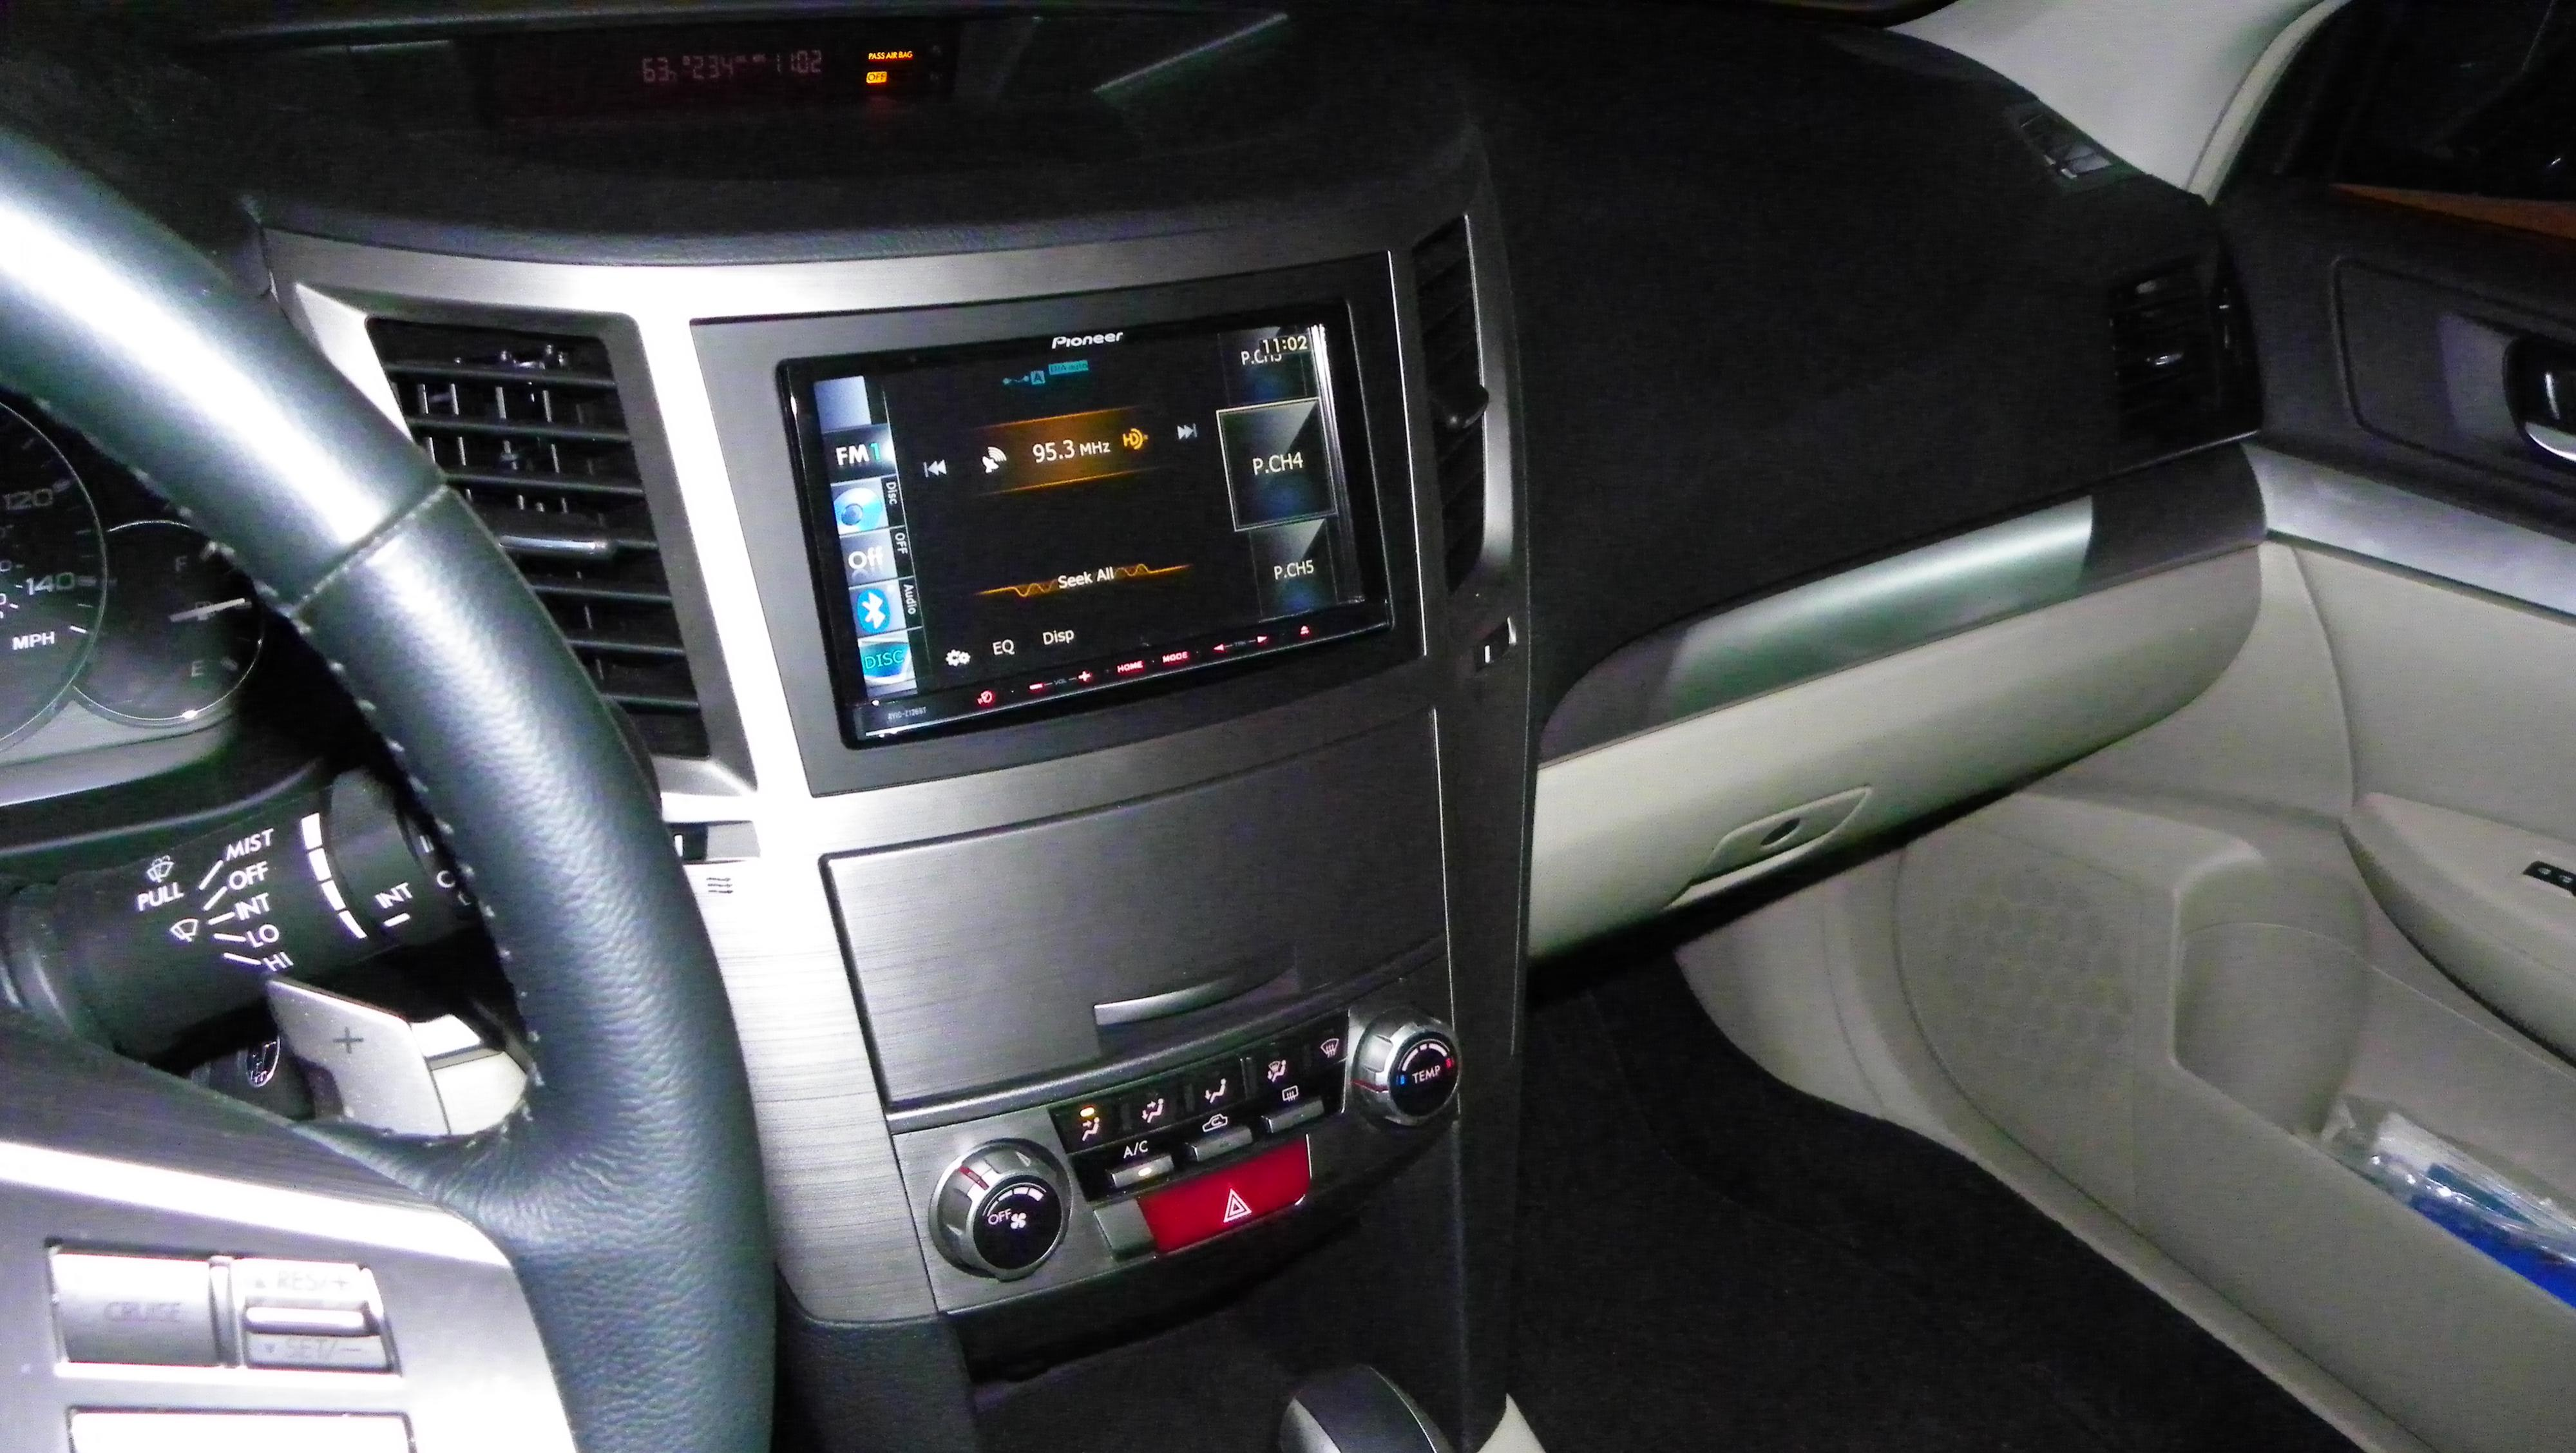 Subaru Wrx Parts 2019 2020 Top Car Release Date 2002 Acura Tl Aftermarket Radio Stereo Page 10 Outback